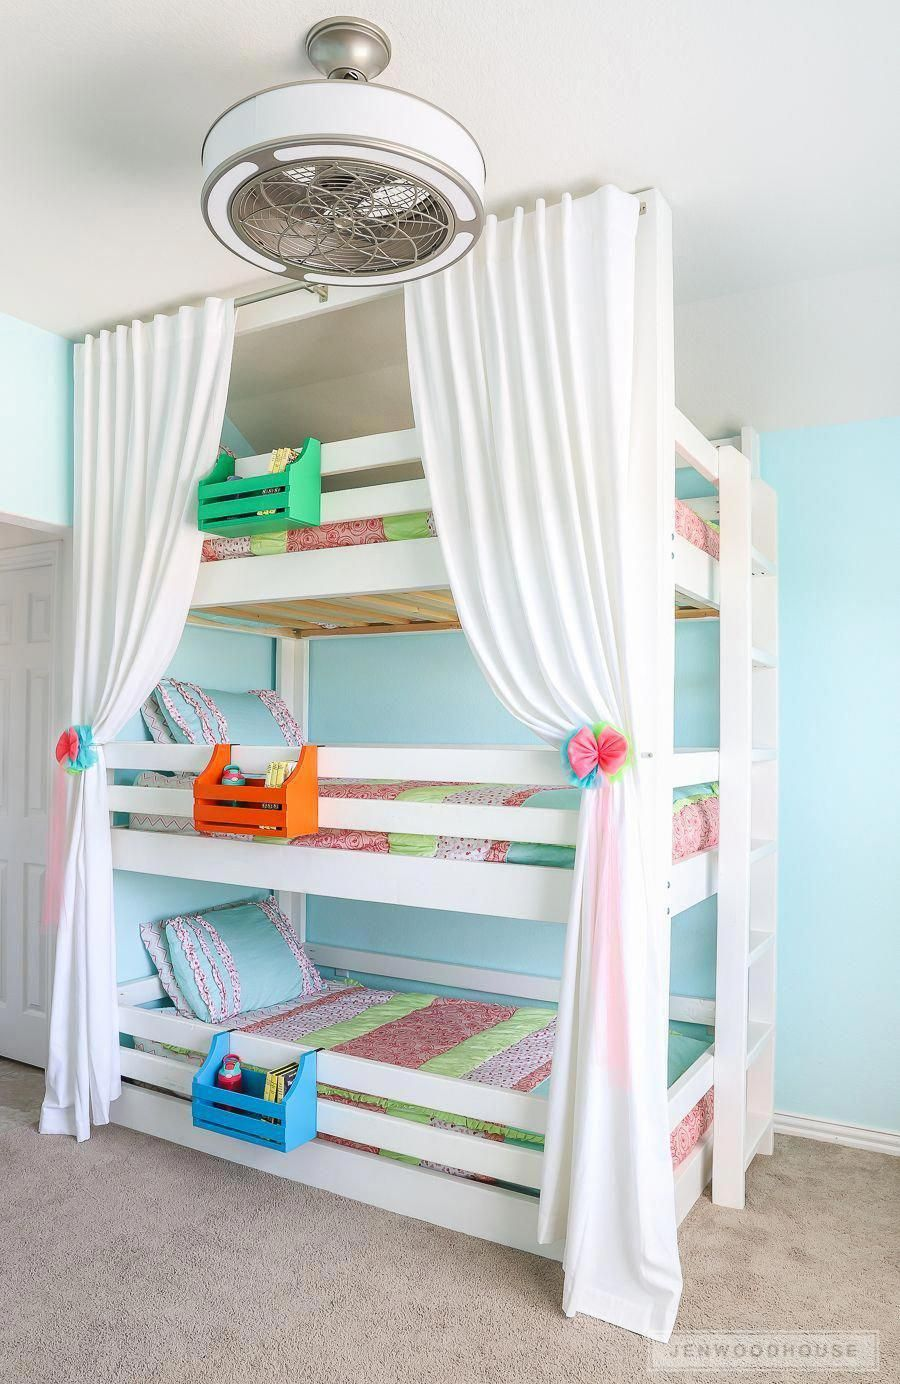 How To Build A DIY Triple Bunk Bed - Plans and Tutorial!